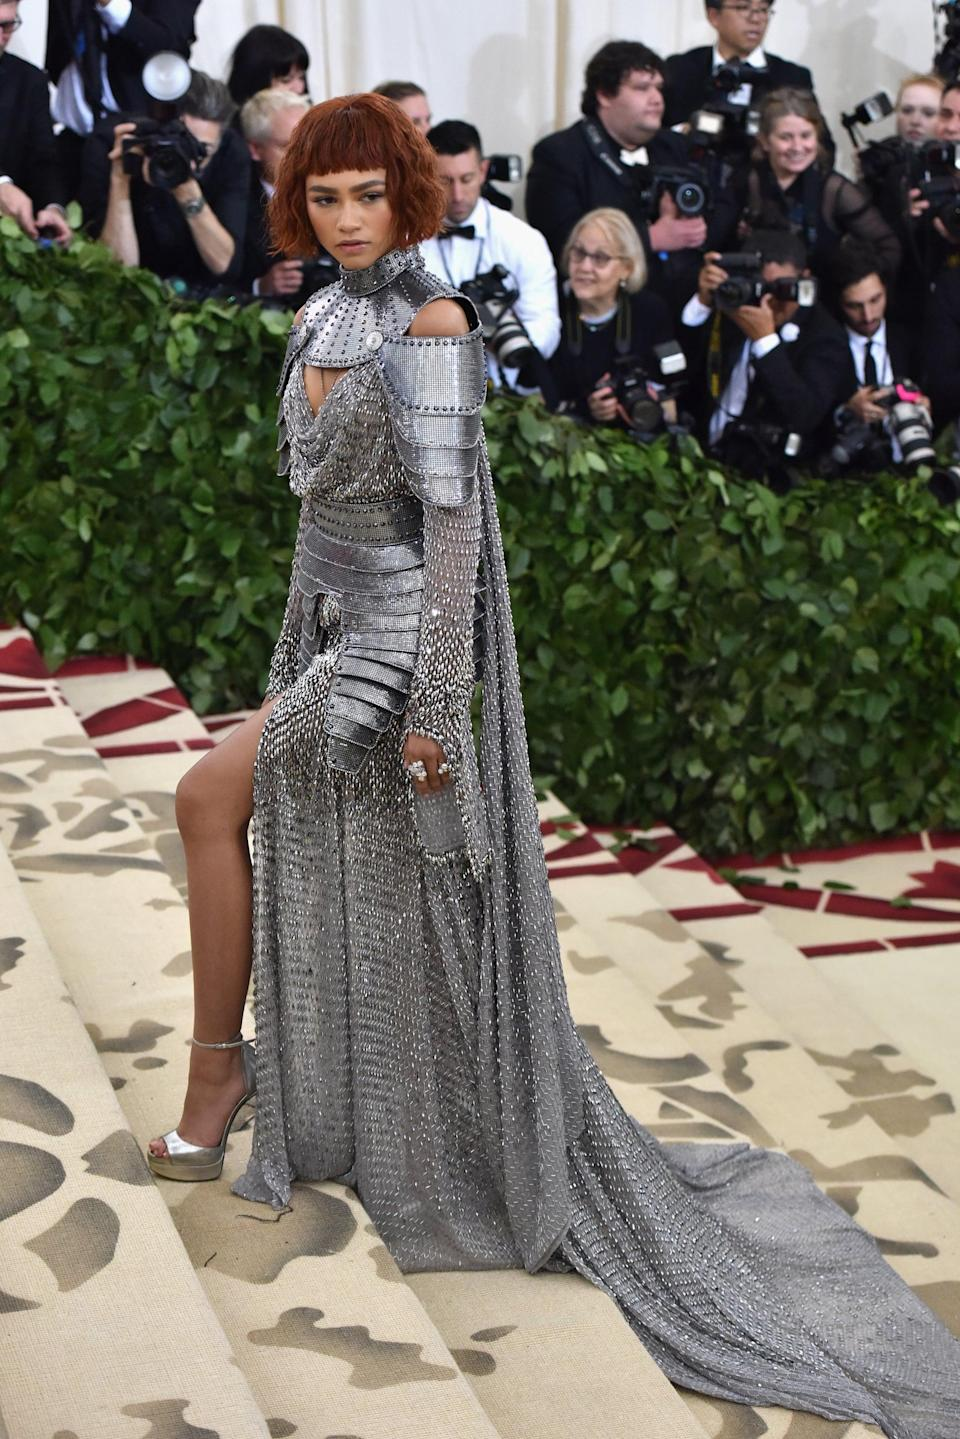 """<p><a class=""""link rapid-noclick-resp"""" href=""""https://www.popsugar.com/Zendaya"""" rel=""""nofollow noopener"""" target=""""_blank"""" data-ylk=""""slk:Zendaya"""">Zendaya</a> named her <a href=""""https://www.popsugar.com/fashion/Zendaya-Met-Gala-Dress-2018-44821237"""" class=""""link rapid-noclick-resp"""" rel=""""nofollow noopener"""" target=""""_blank"""" data-ylk=""""slk:Joan of Arc inspired Met Gala look"""">Joan of Arc inspired Met Gala look</a>, courtesy of Versace, as her favorite. She worked with Law Roach on the outfit in 2018, coordinating her knight's armor with Jimmy Choo heels and Tiffany &amp; Co. jewelry.</p>"""